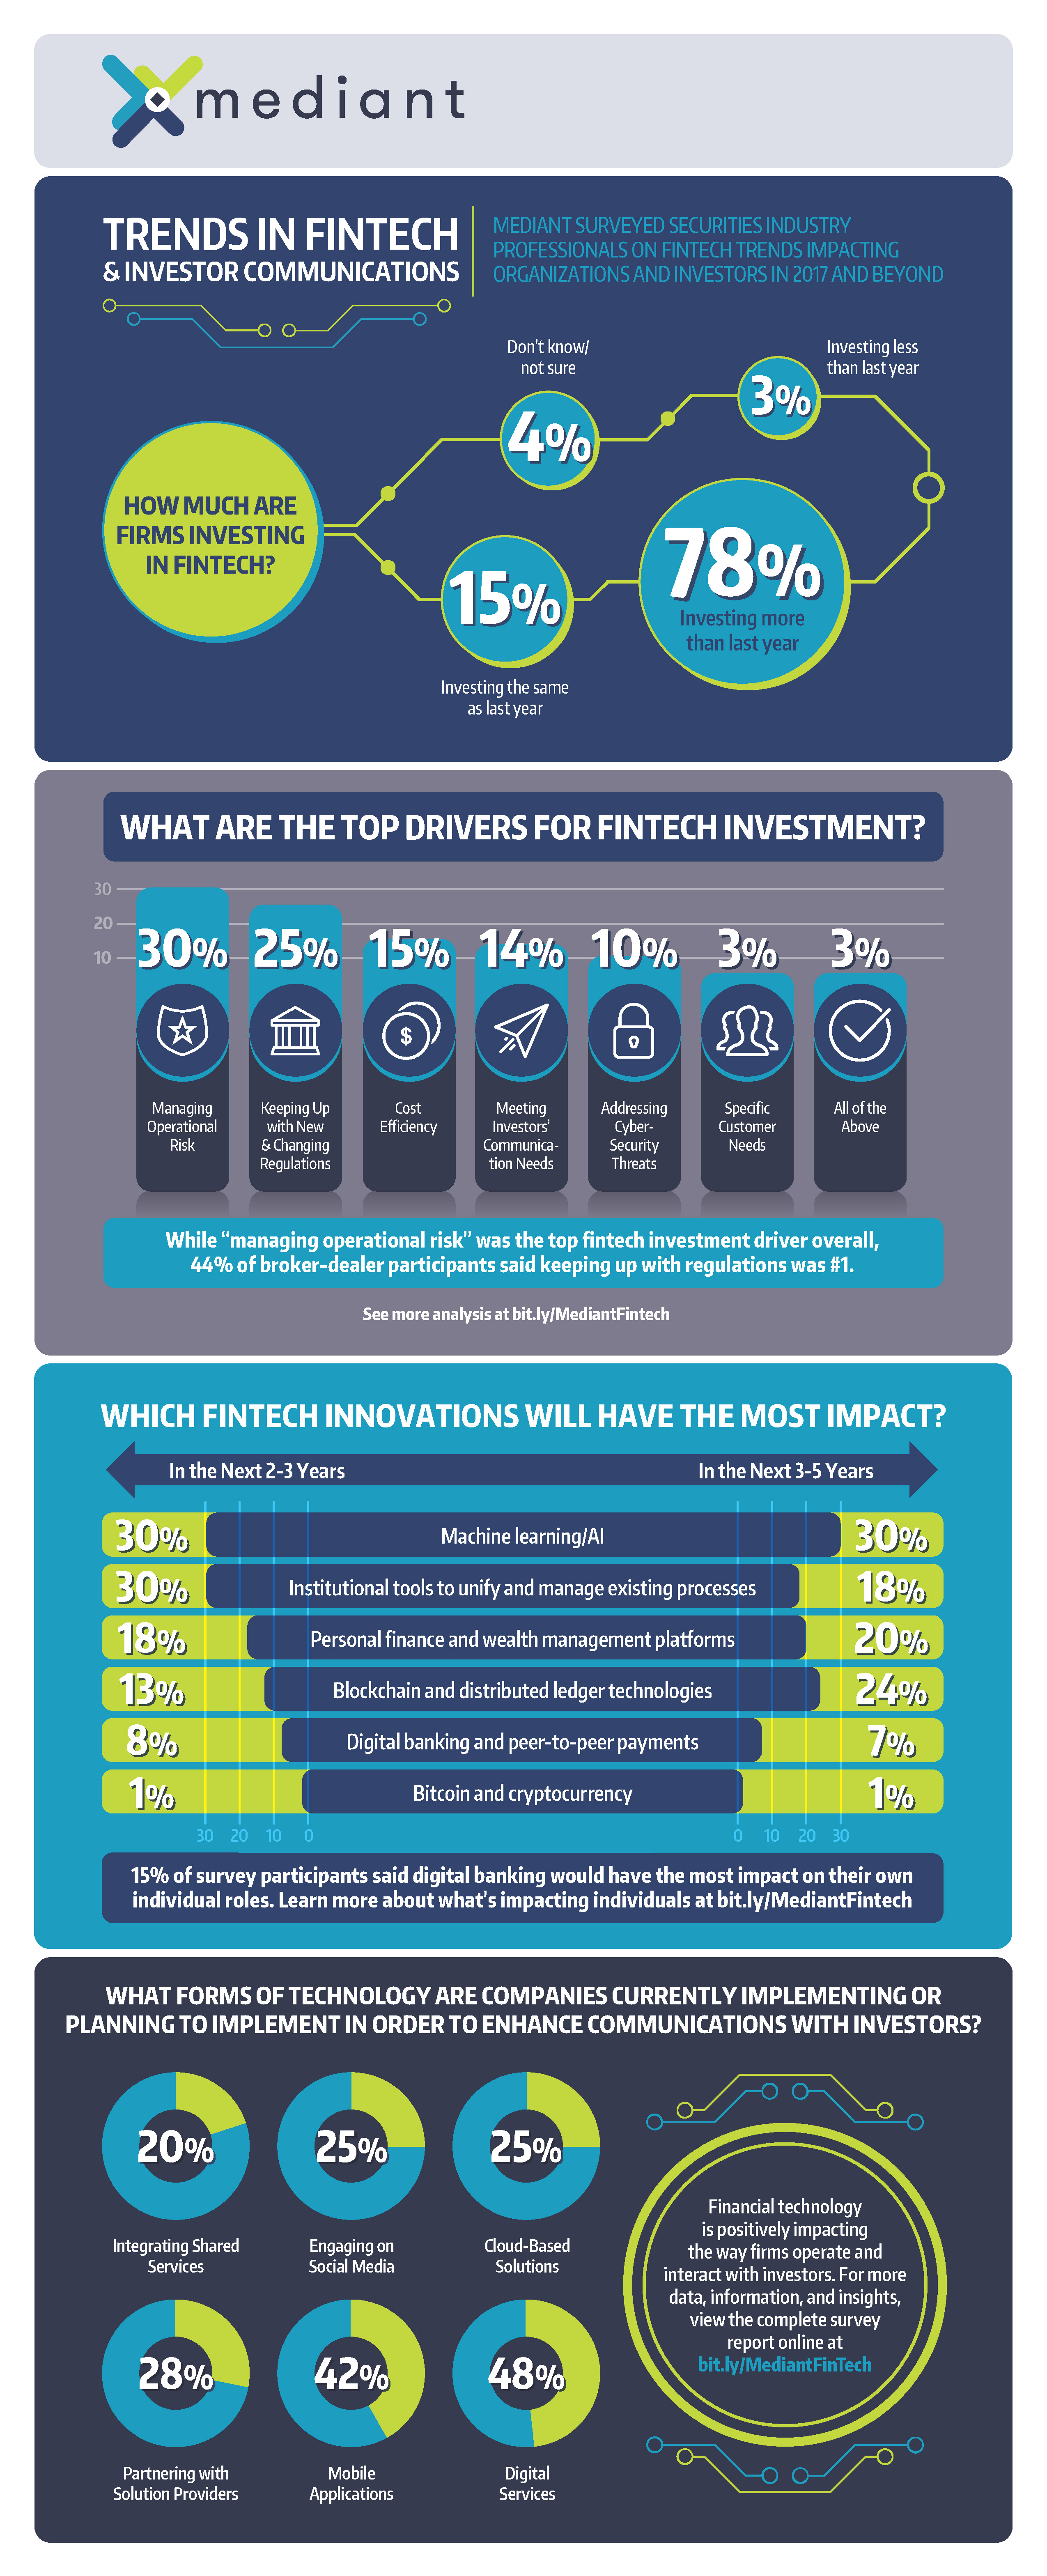 Mediant-Fintech-Trends-Infographic